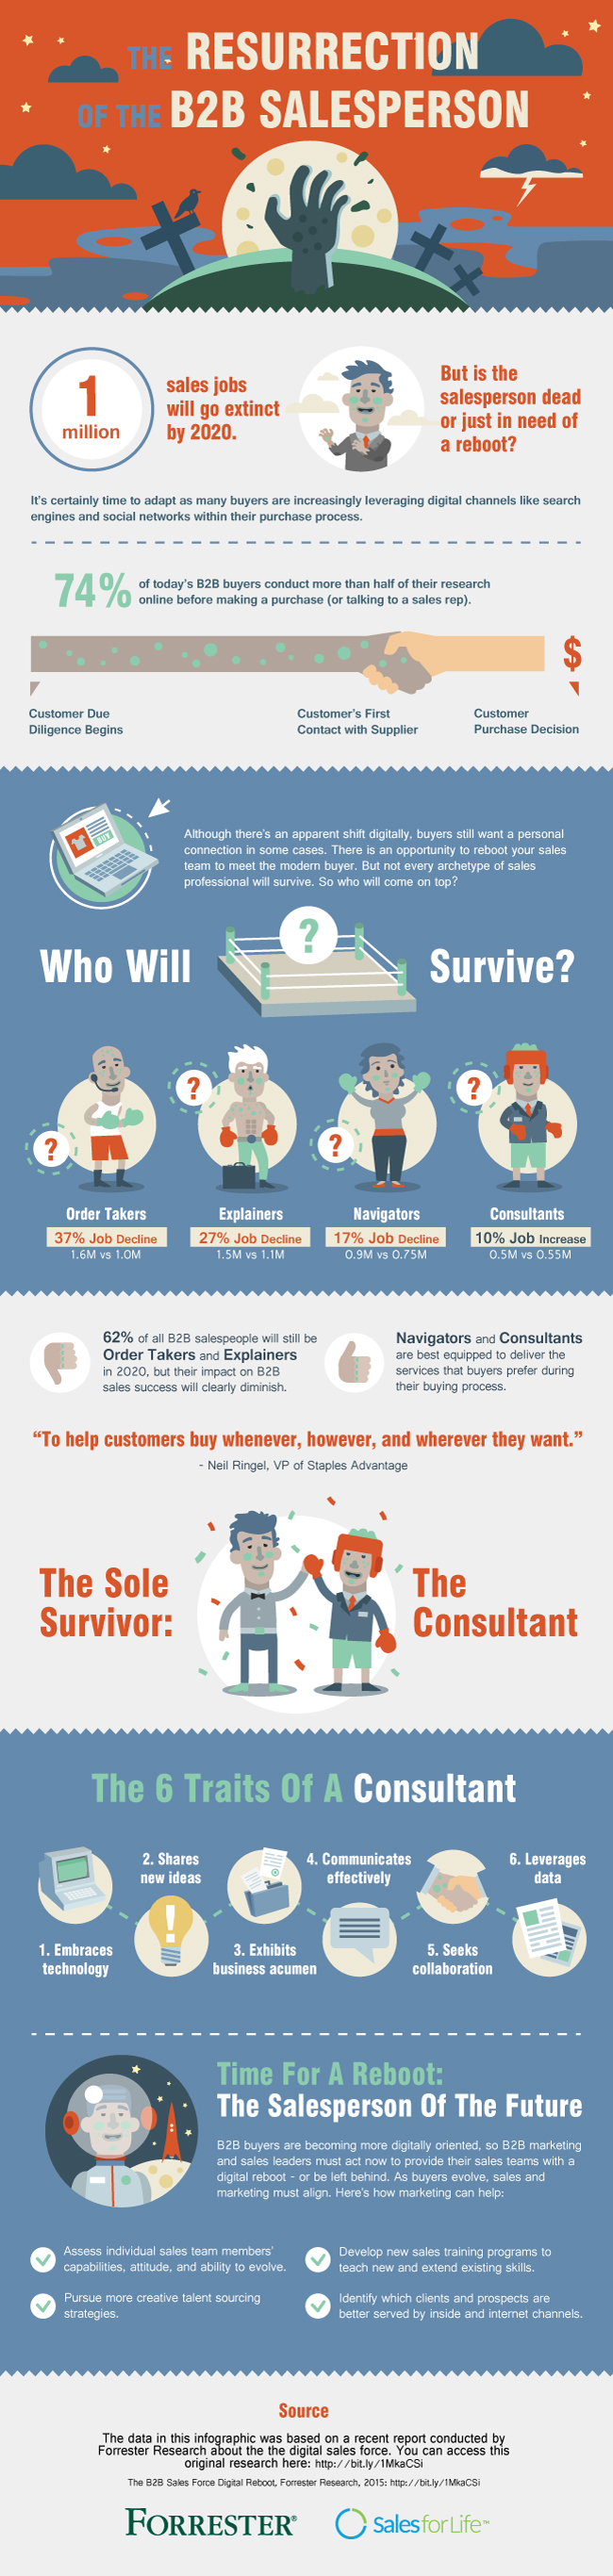 The-Resurrection-Of-The-B2B-Salesperson-Infographic-Forrester.jpg